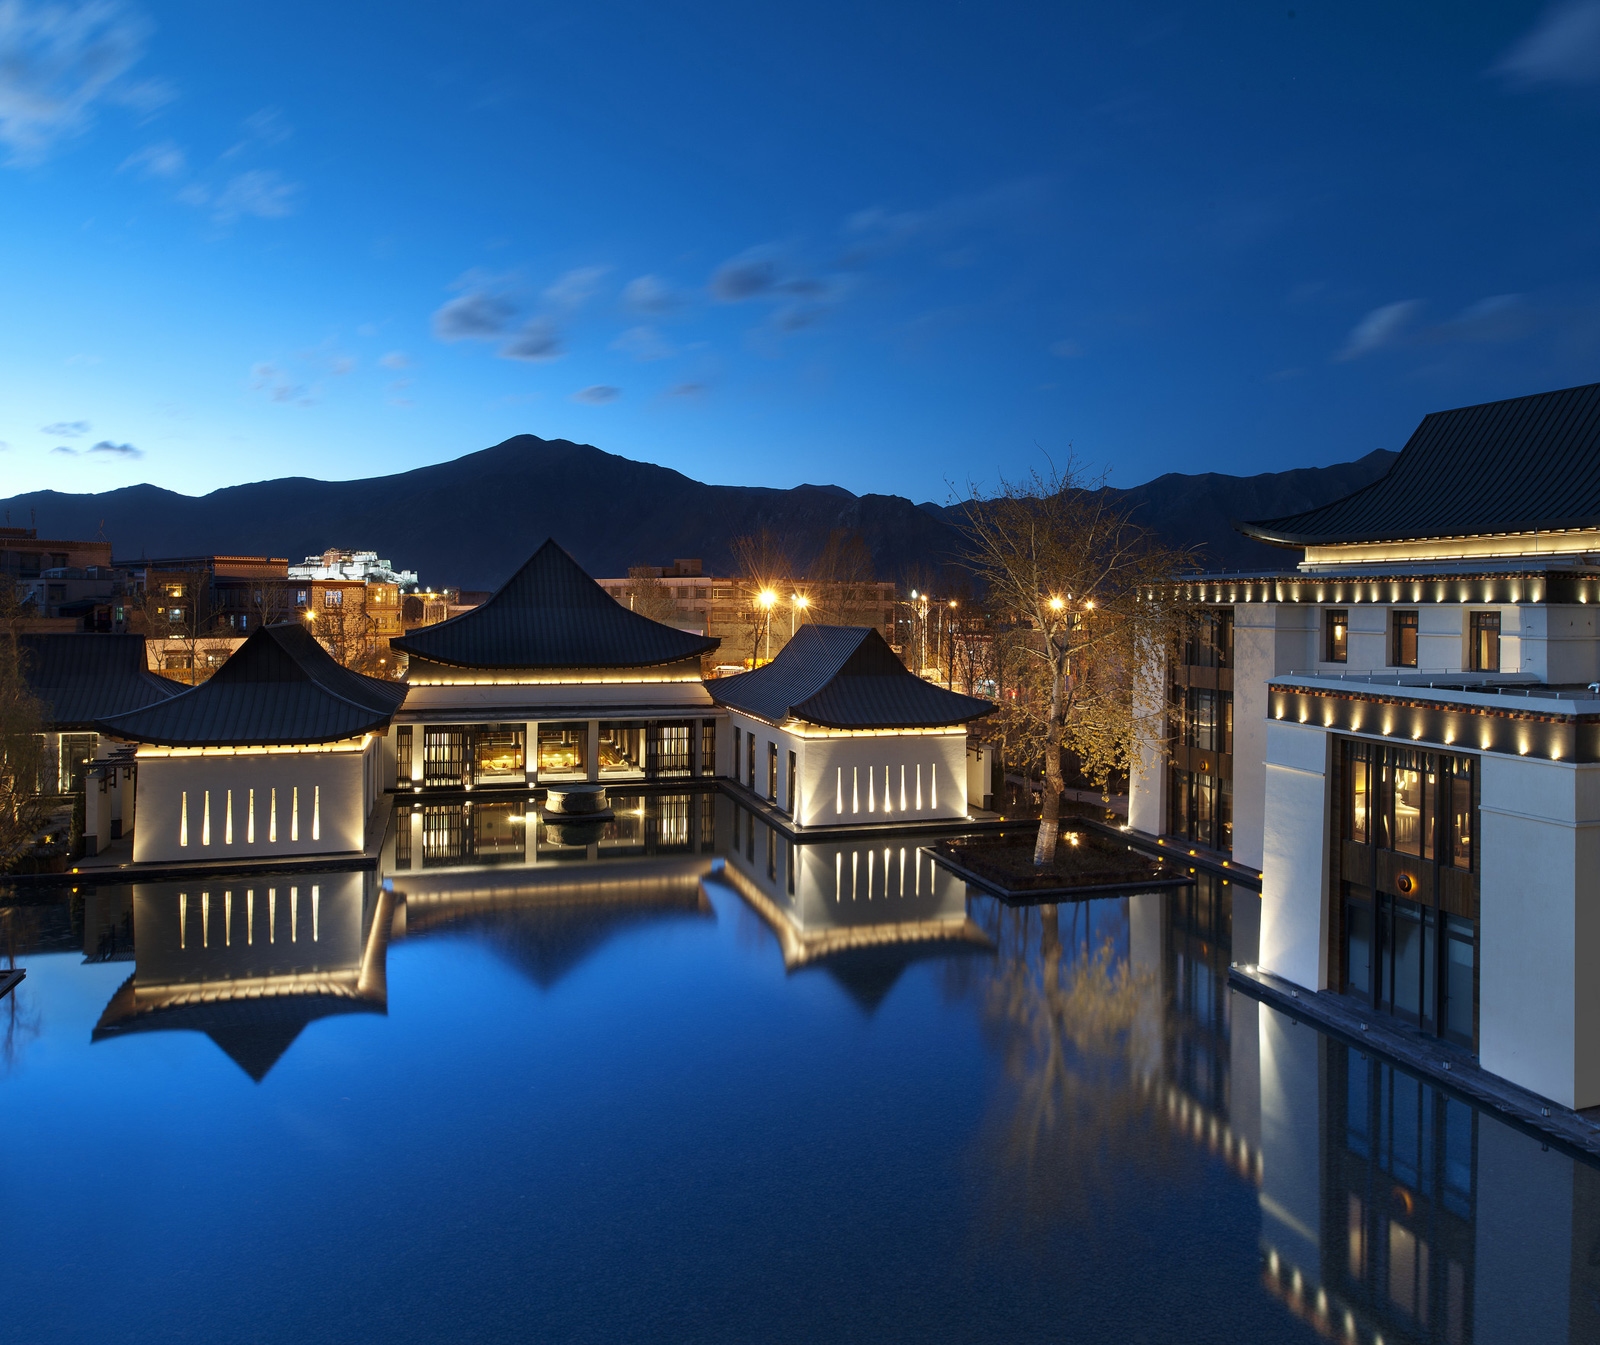 St regis lhasa tibet 39 s first five star hotel extravaganzi for 5 star luxury hotels